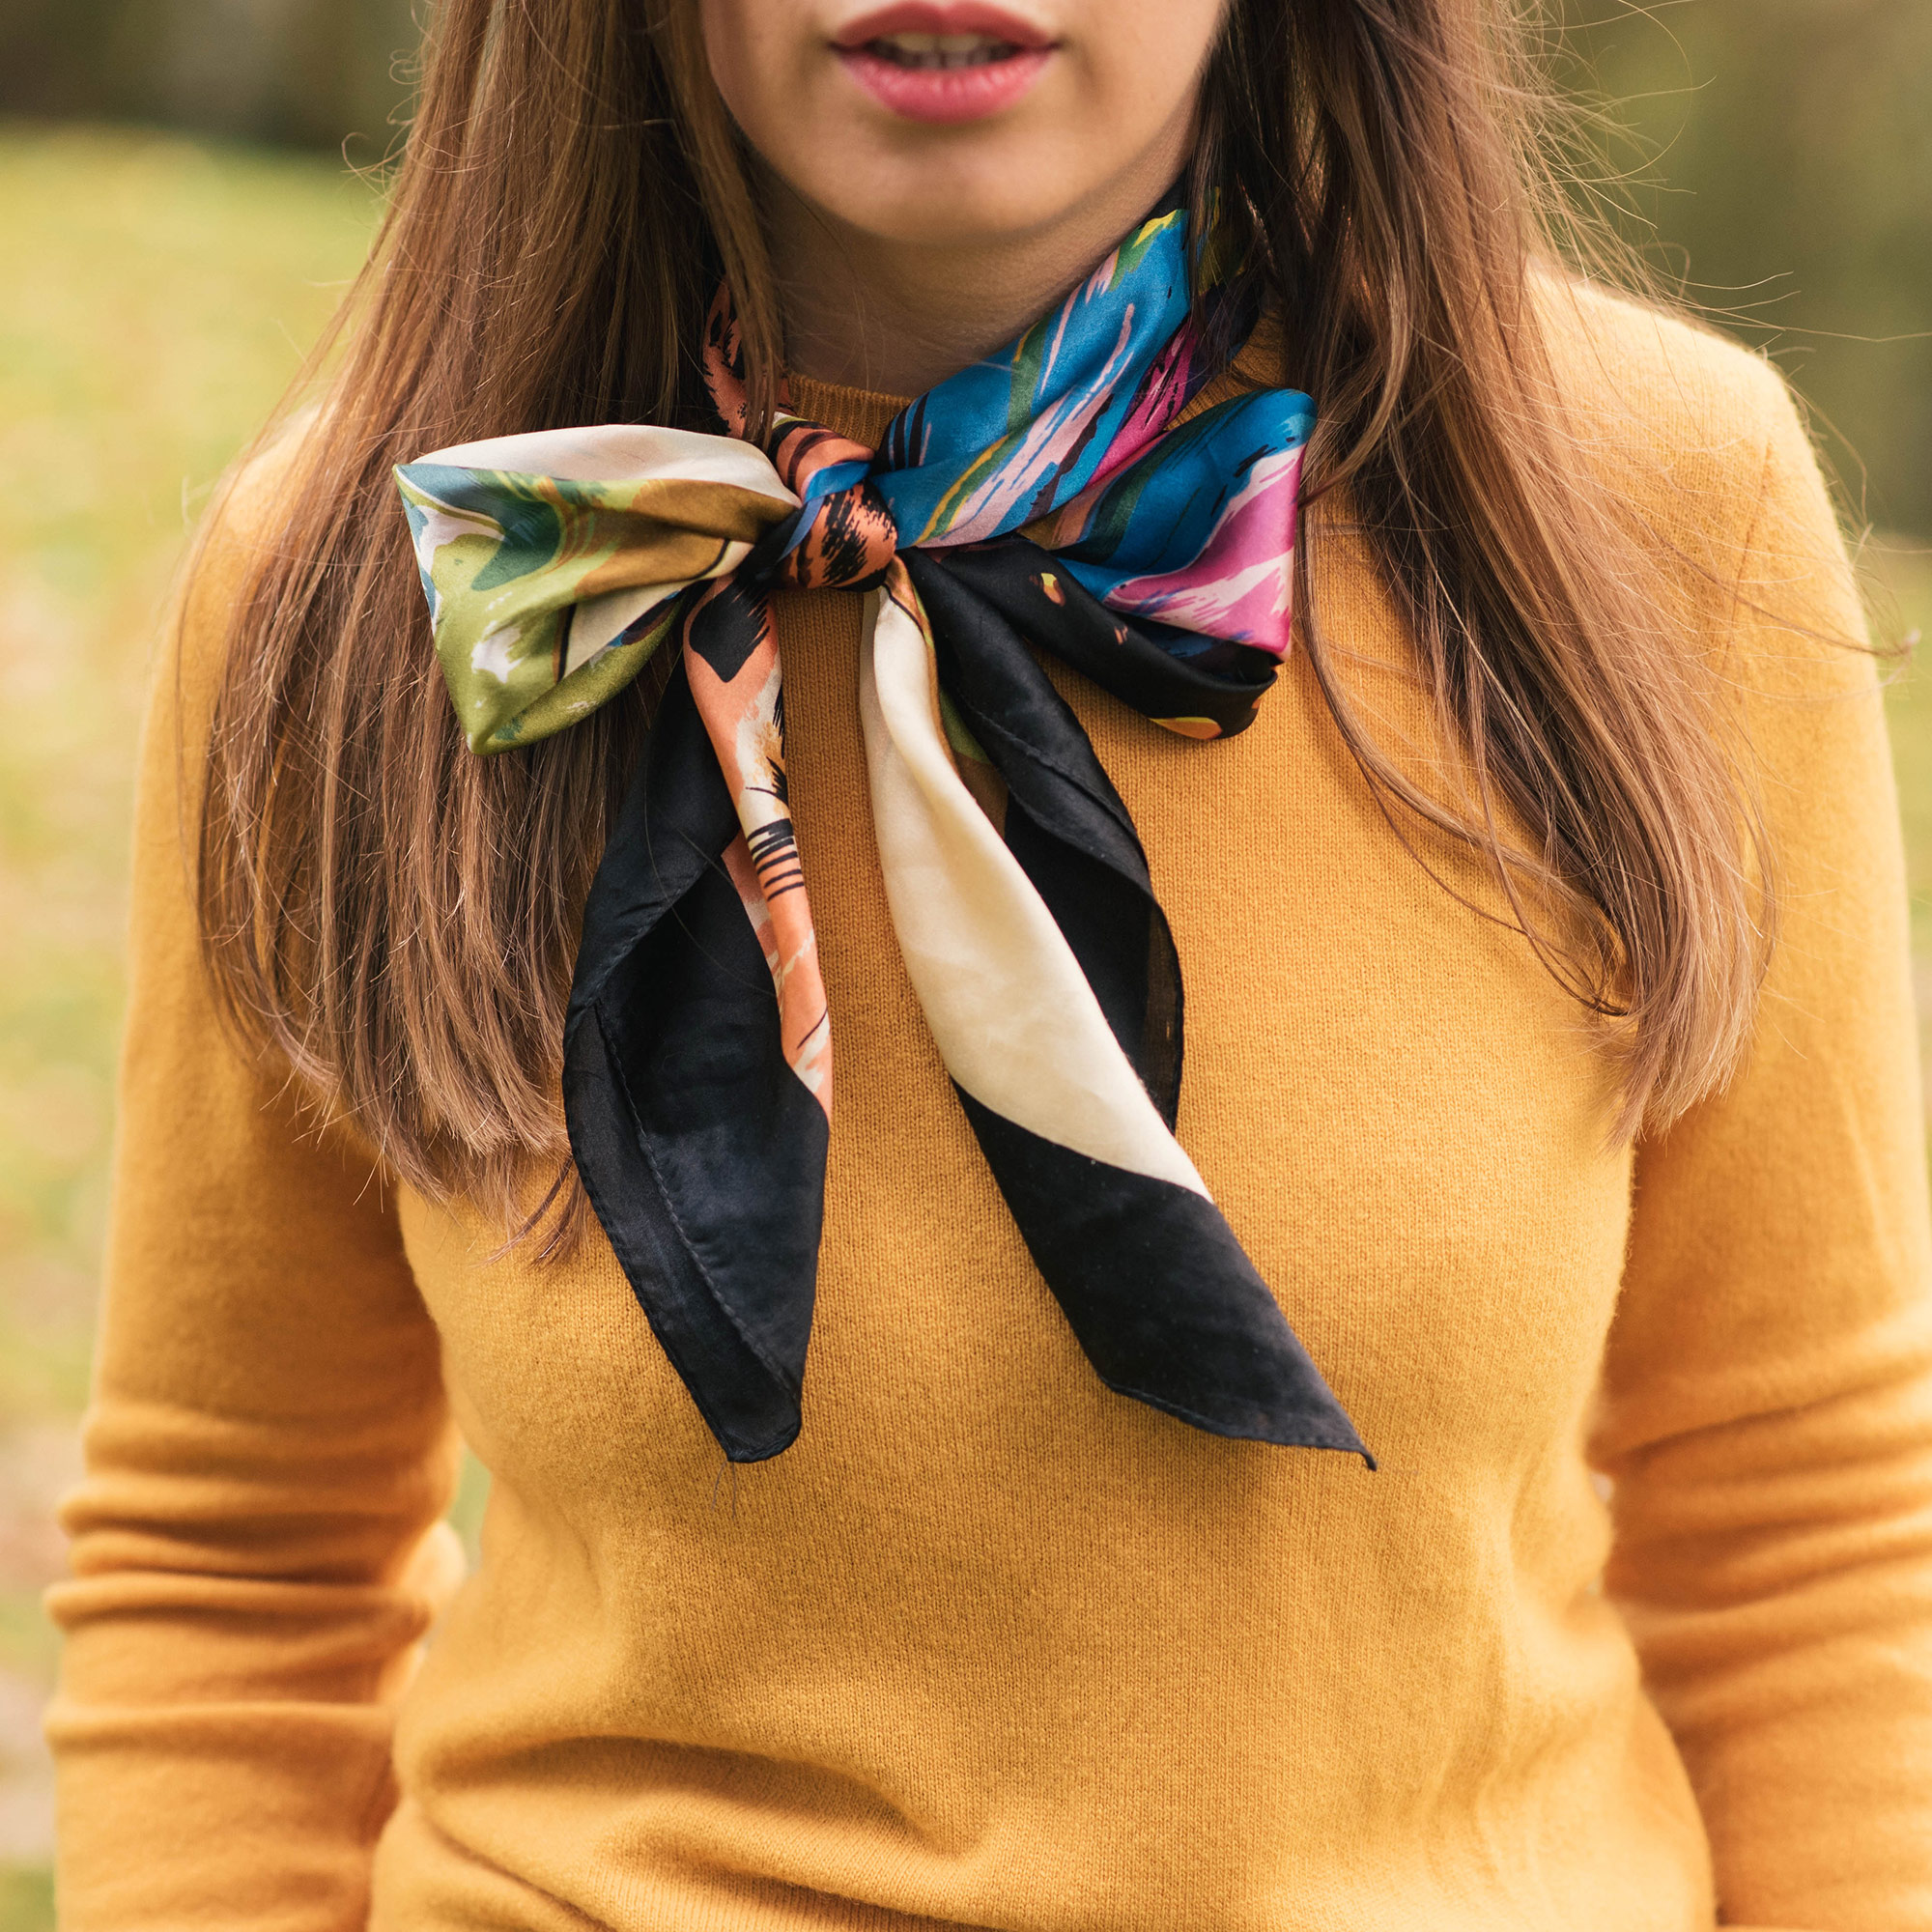 sweater-weather-transform-dull-sweater-bright-colored-scarf